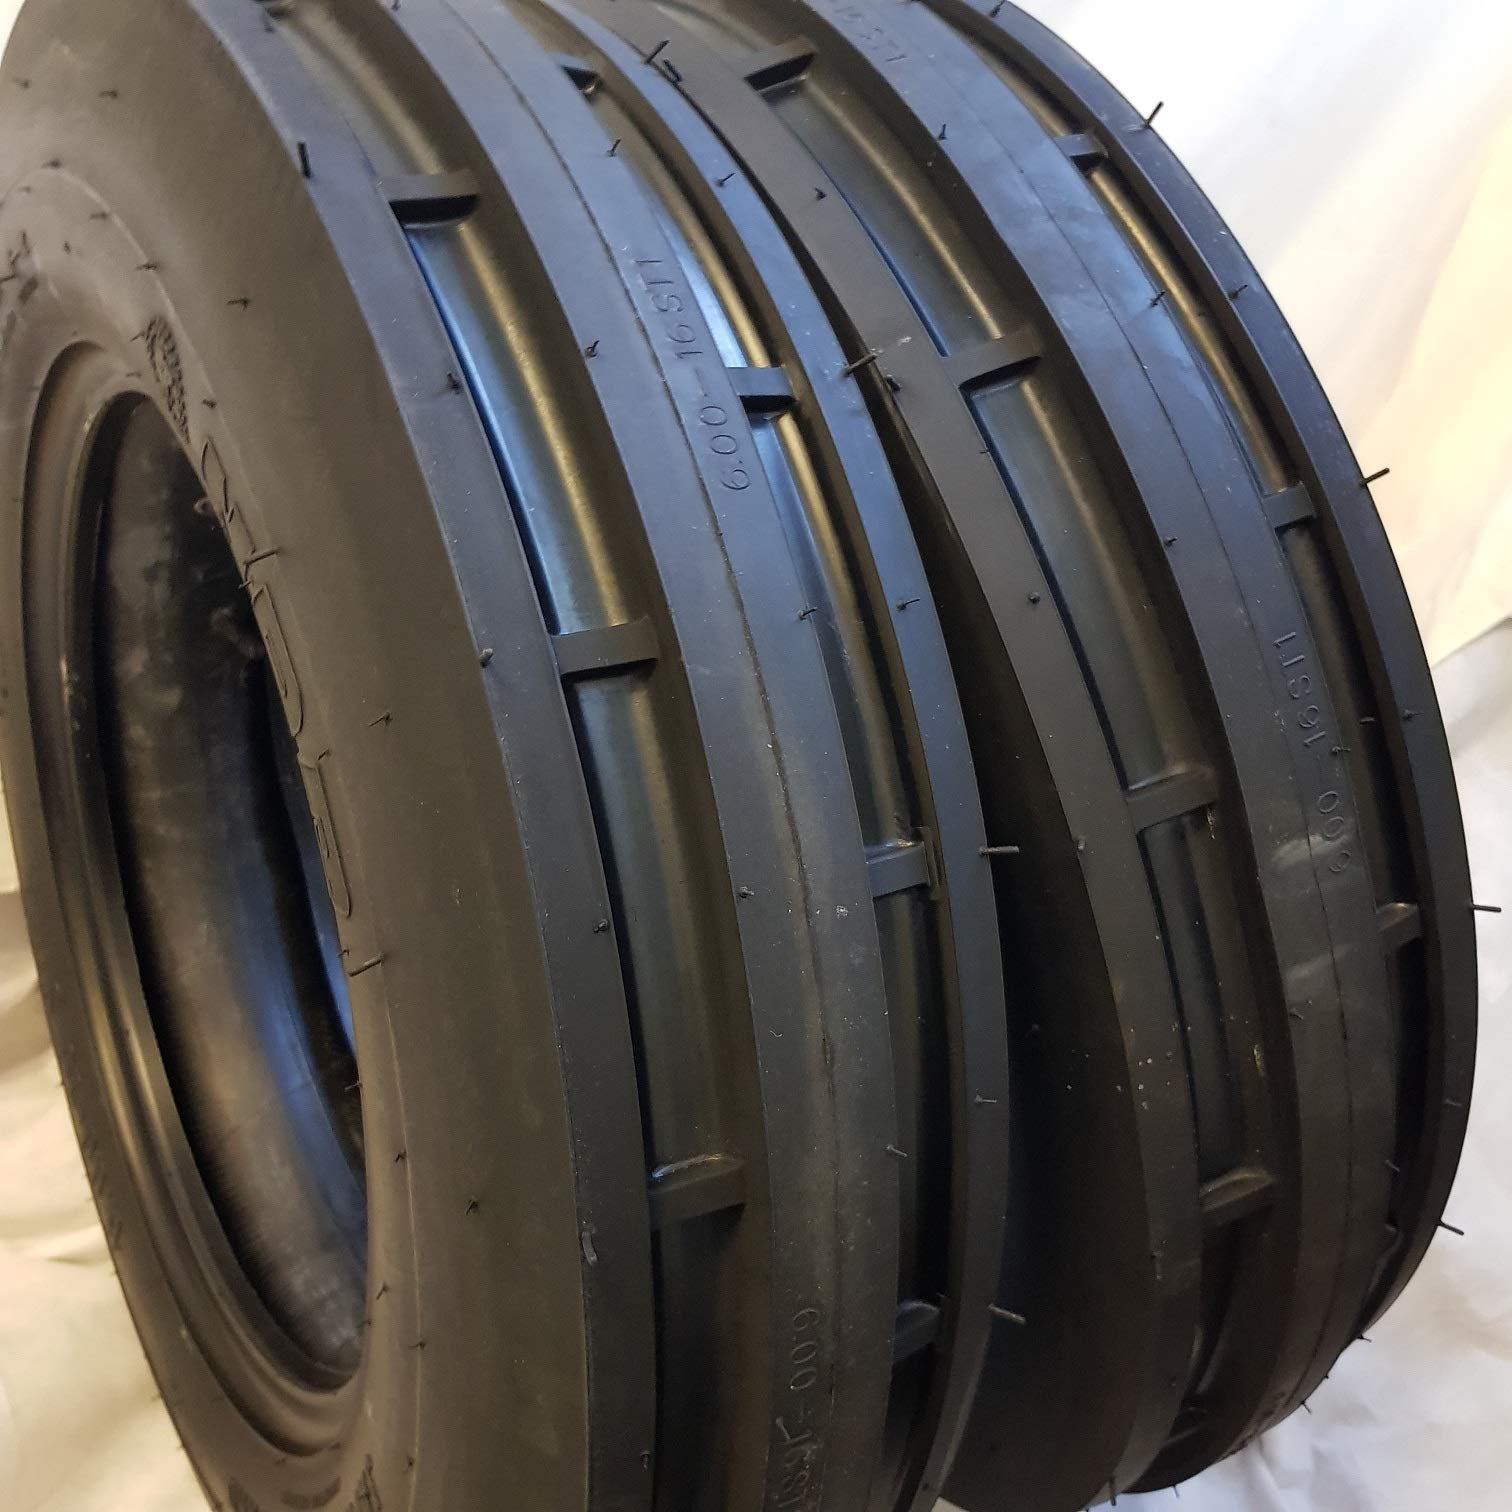 TWO 550X16,550-16,5.50X16 DEERE FORD Six Ply 3 Rib Tractor Tires w/Tubes by Road Warrior